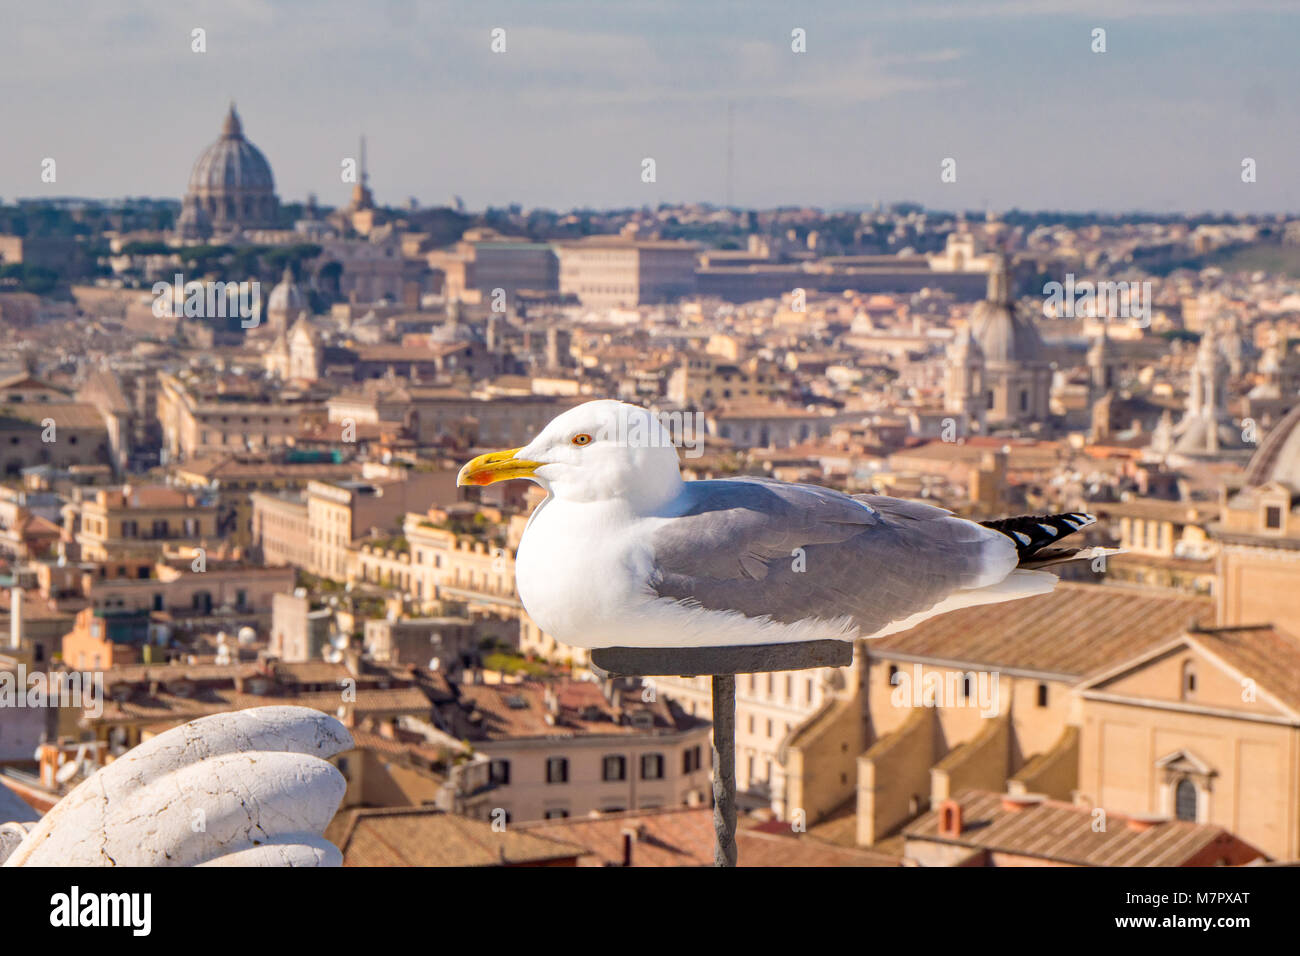 Seagull relaxing on top of Rome skyline - Stock Image